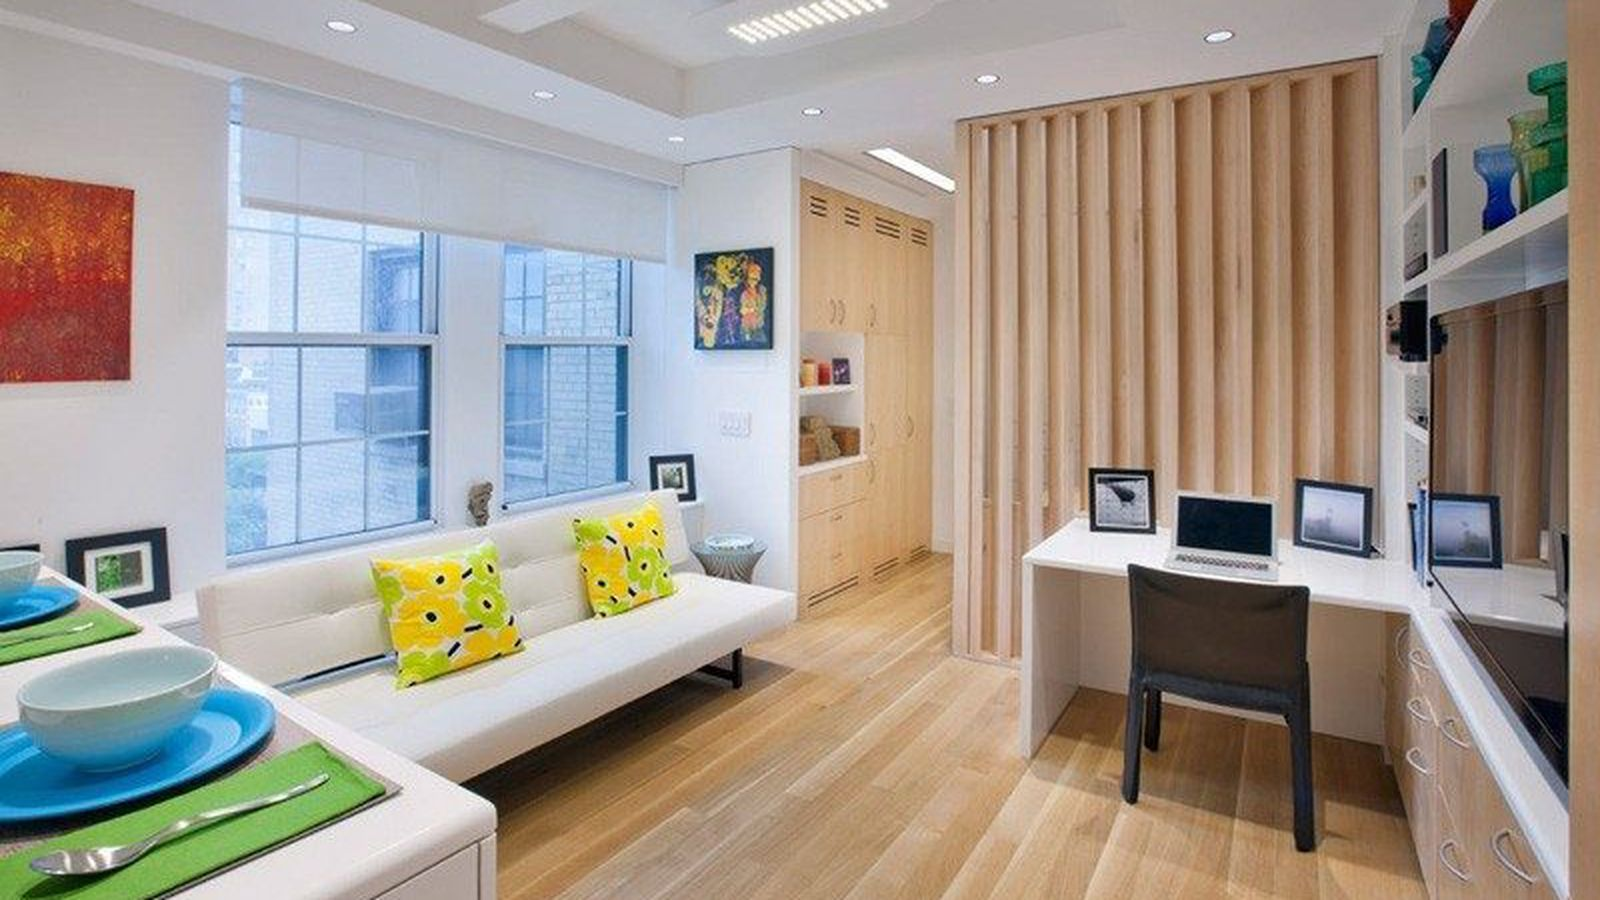 how to fit 5 rooms in a 340 square foot nyc apartment curbed ny. Black Bedroom Furniture Sets. Home Design Ideas